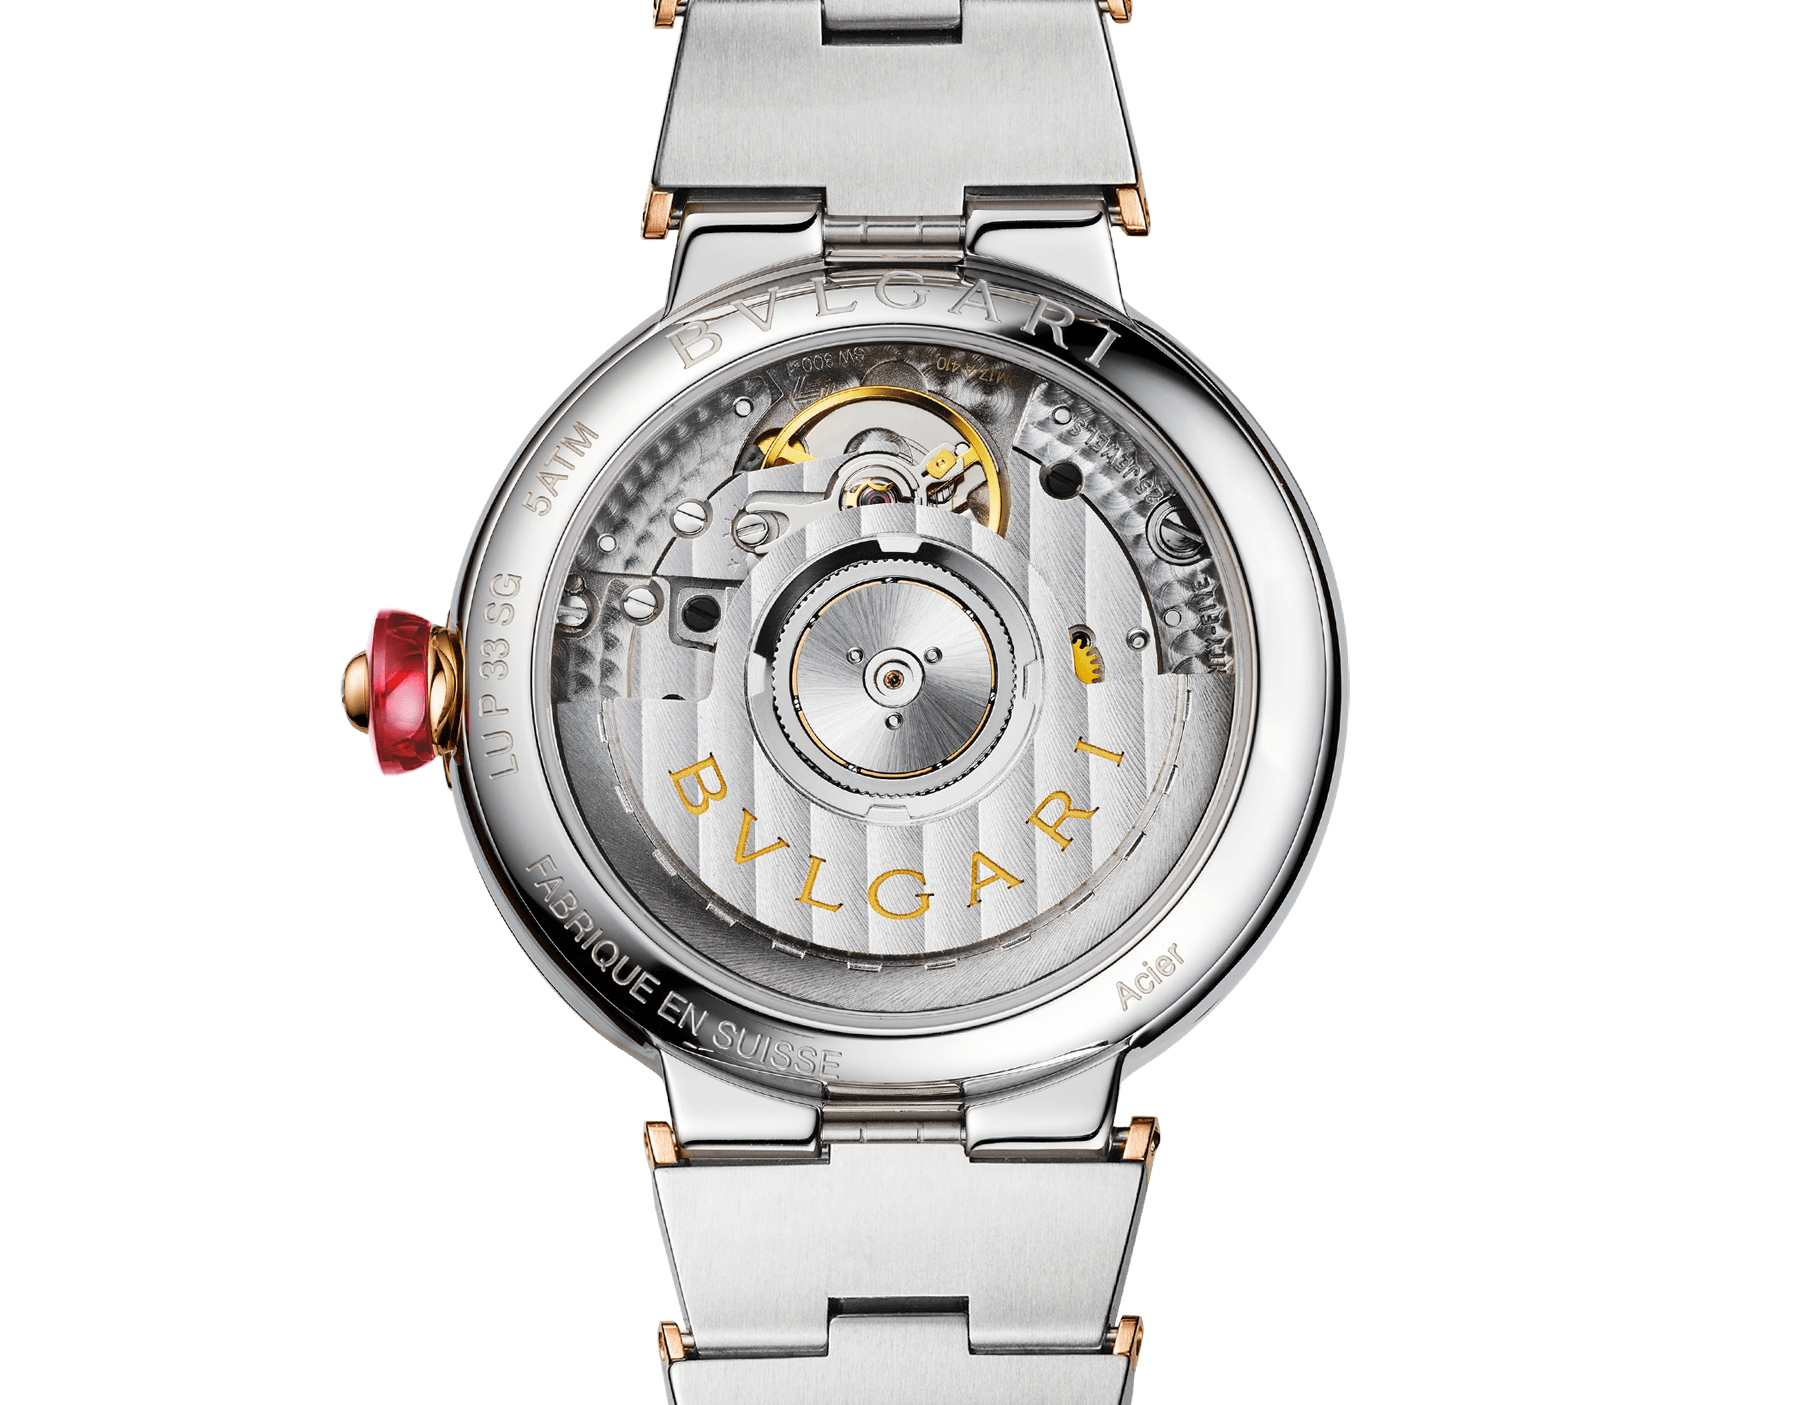 LVCEA watch with stainless steel case, 18 kt rose gold bezel set with brilliant-cut diamonds, green dial, diamond indexes, date opening, stainless steel and 18 kt rose gold bracelet. Exclusive Edition for Middle East 103289 image 4